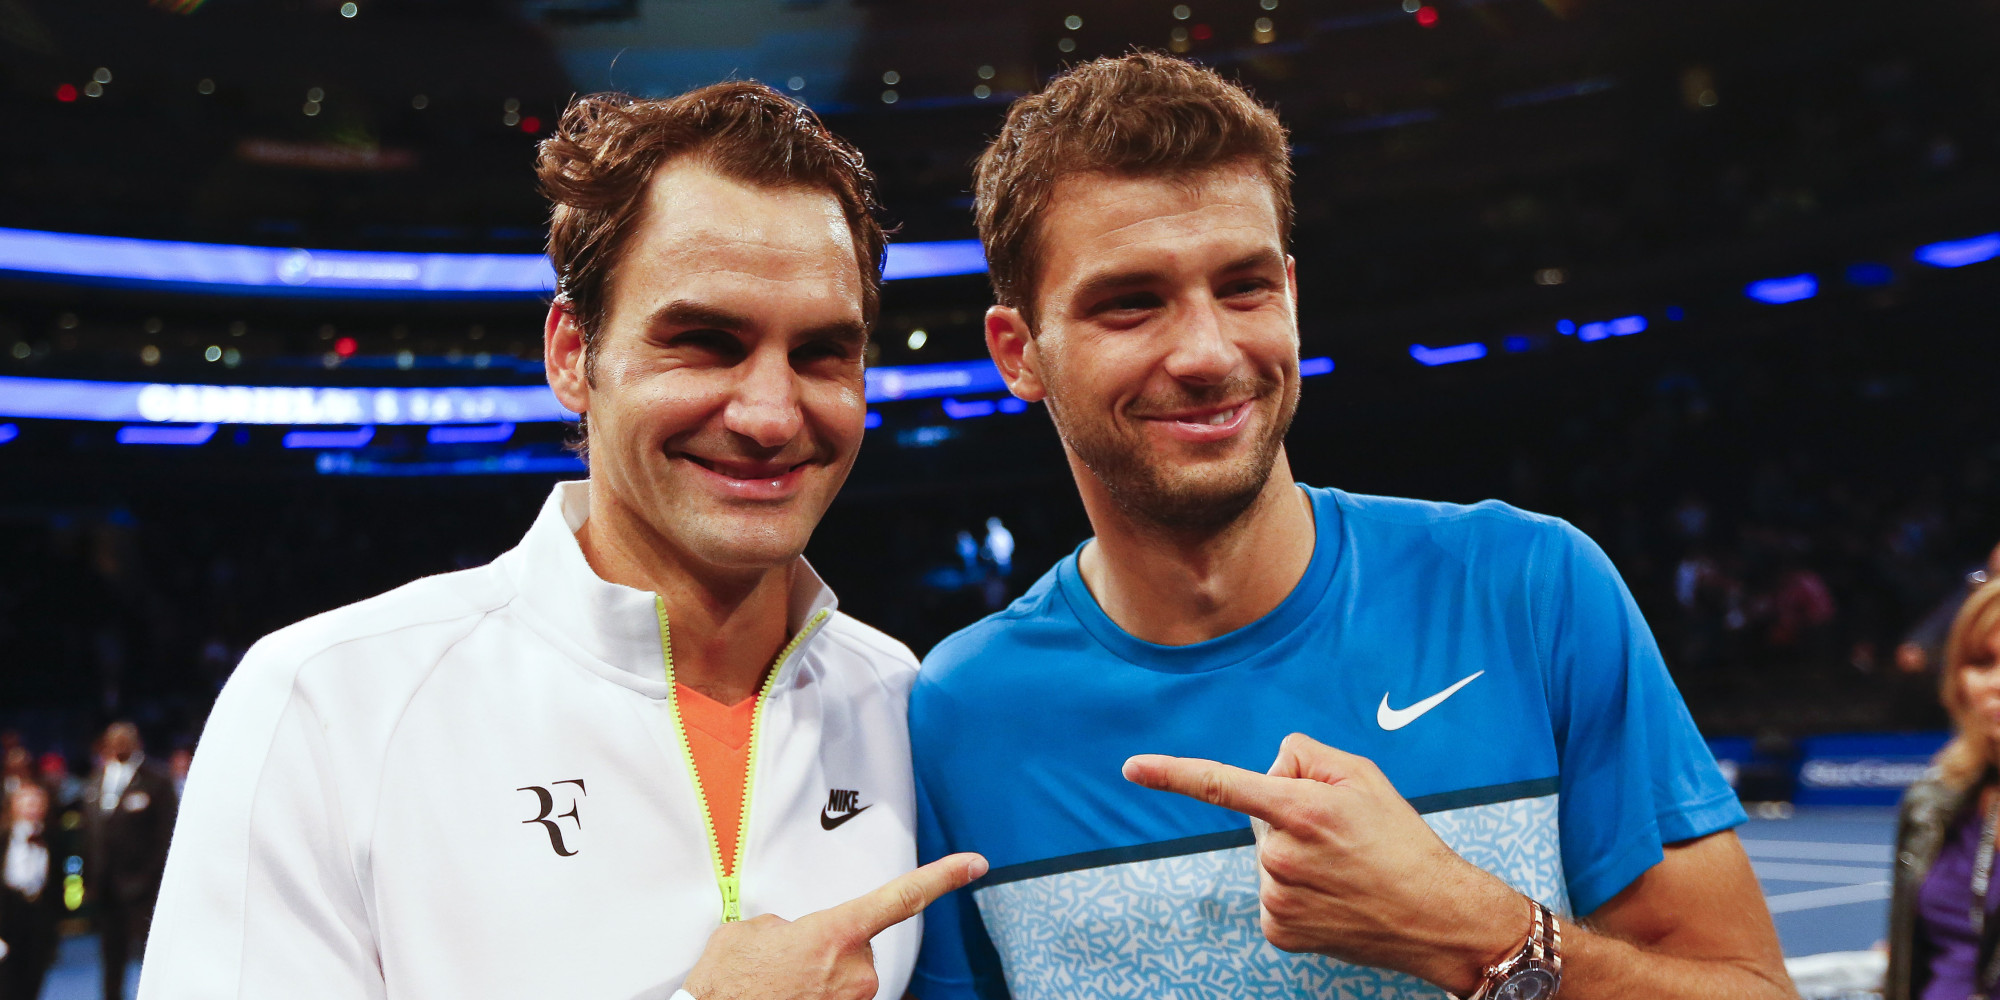 NEW YORK - MARCH 10:  Roger Federer of Switzerland and Grigor Dimitrov of Bulgaria pose for a photo after the BNP Paribas Showdown at Madison Square Garden on March 10, 2015 in New York City.  (Photo by Jeff Zelevansky/Getty Images)